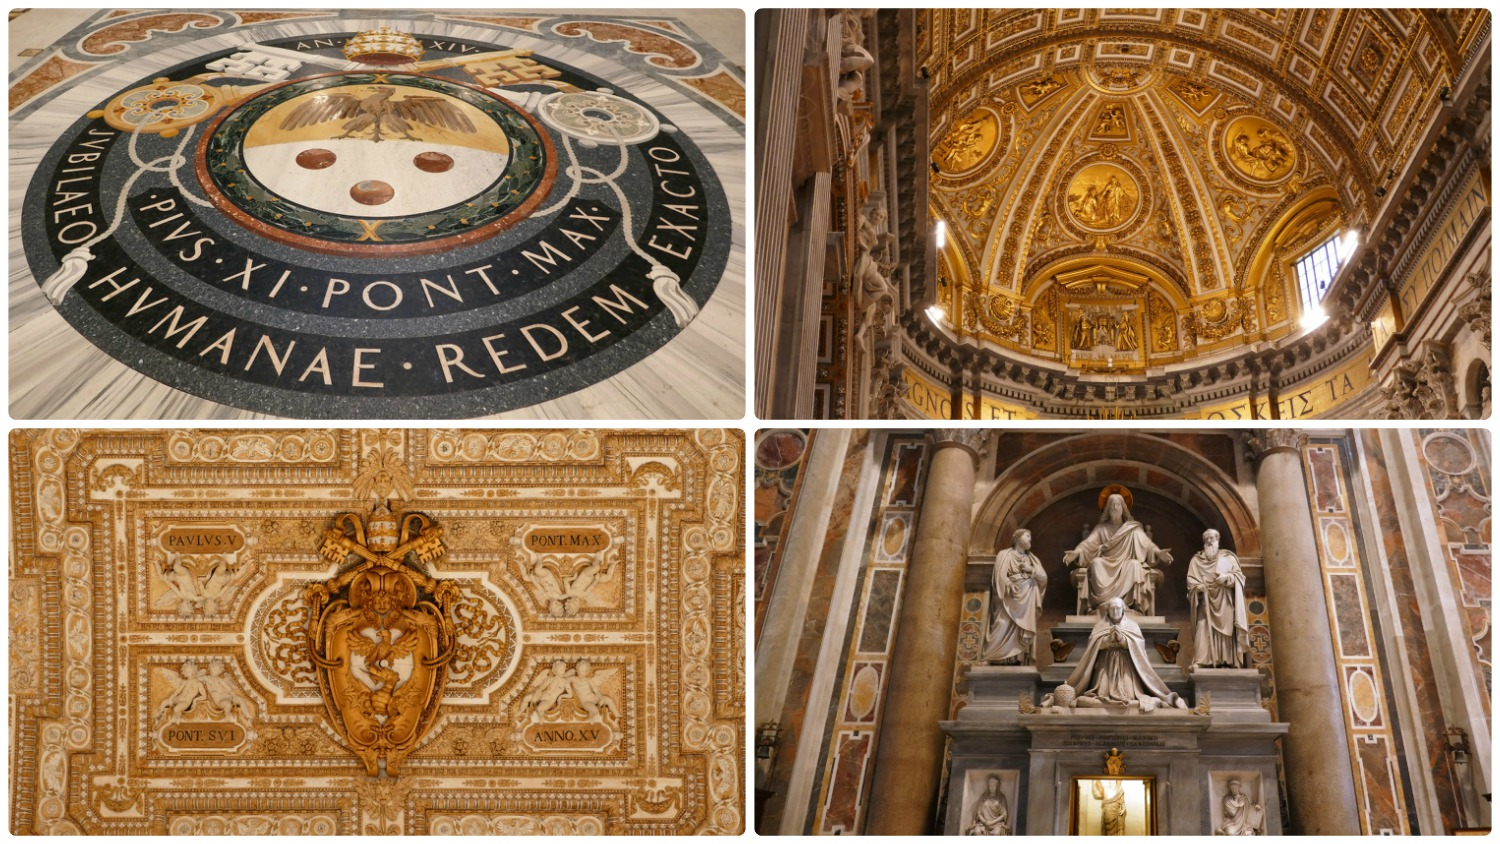 The interior of St. Peter's Basilica in Vatican City State. From the floor (top left) to the arched ceilings (top right), the decoration and gold detail in St. Peter's Basilica is breathtaking!